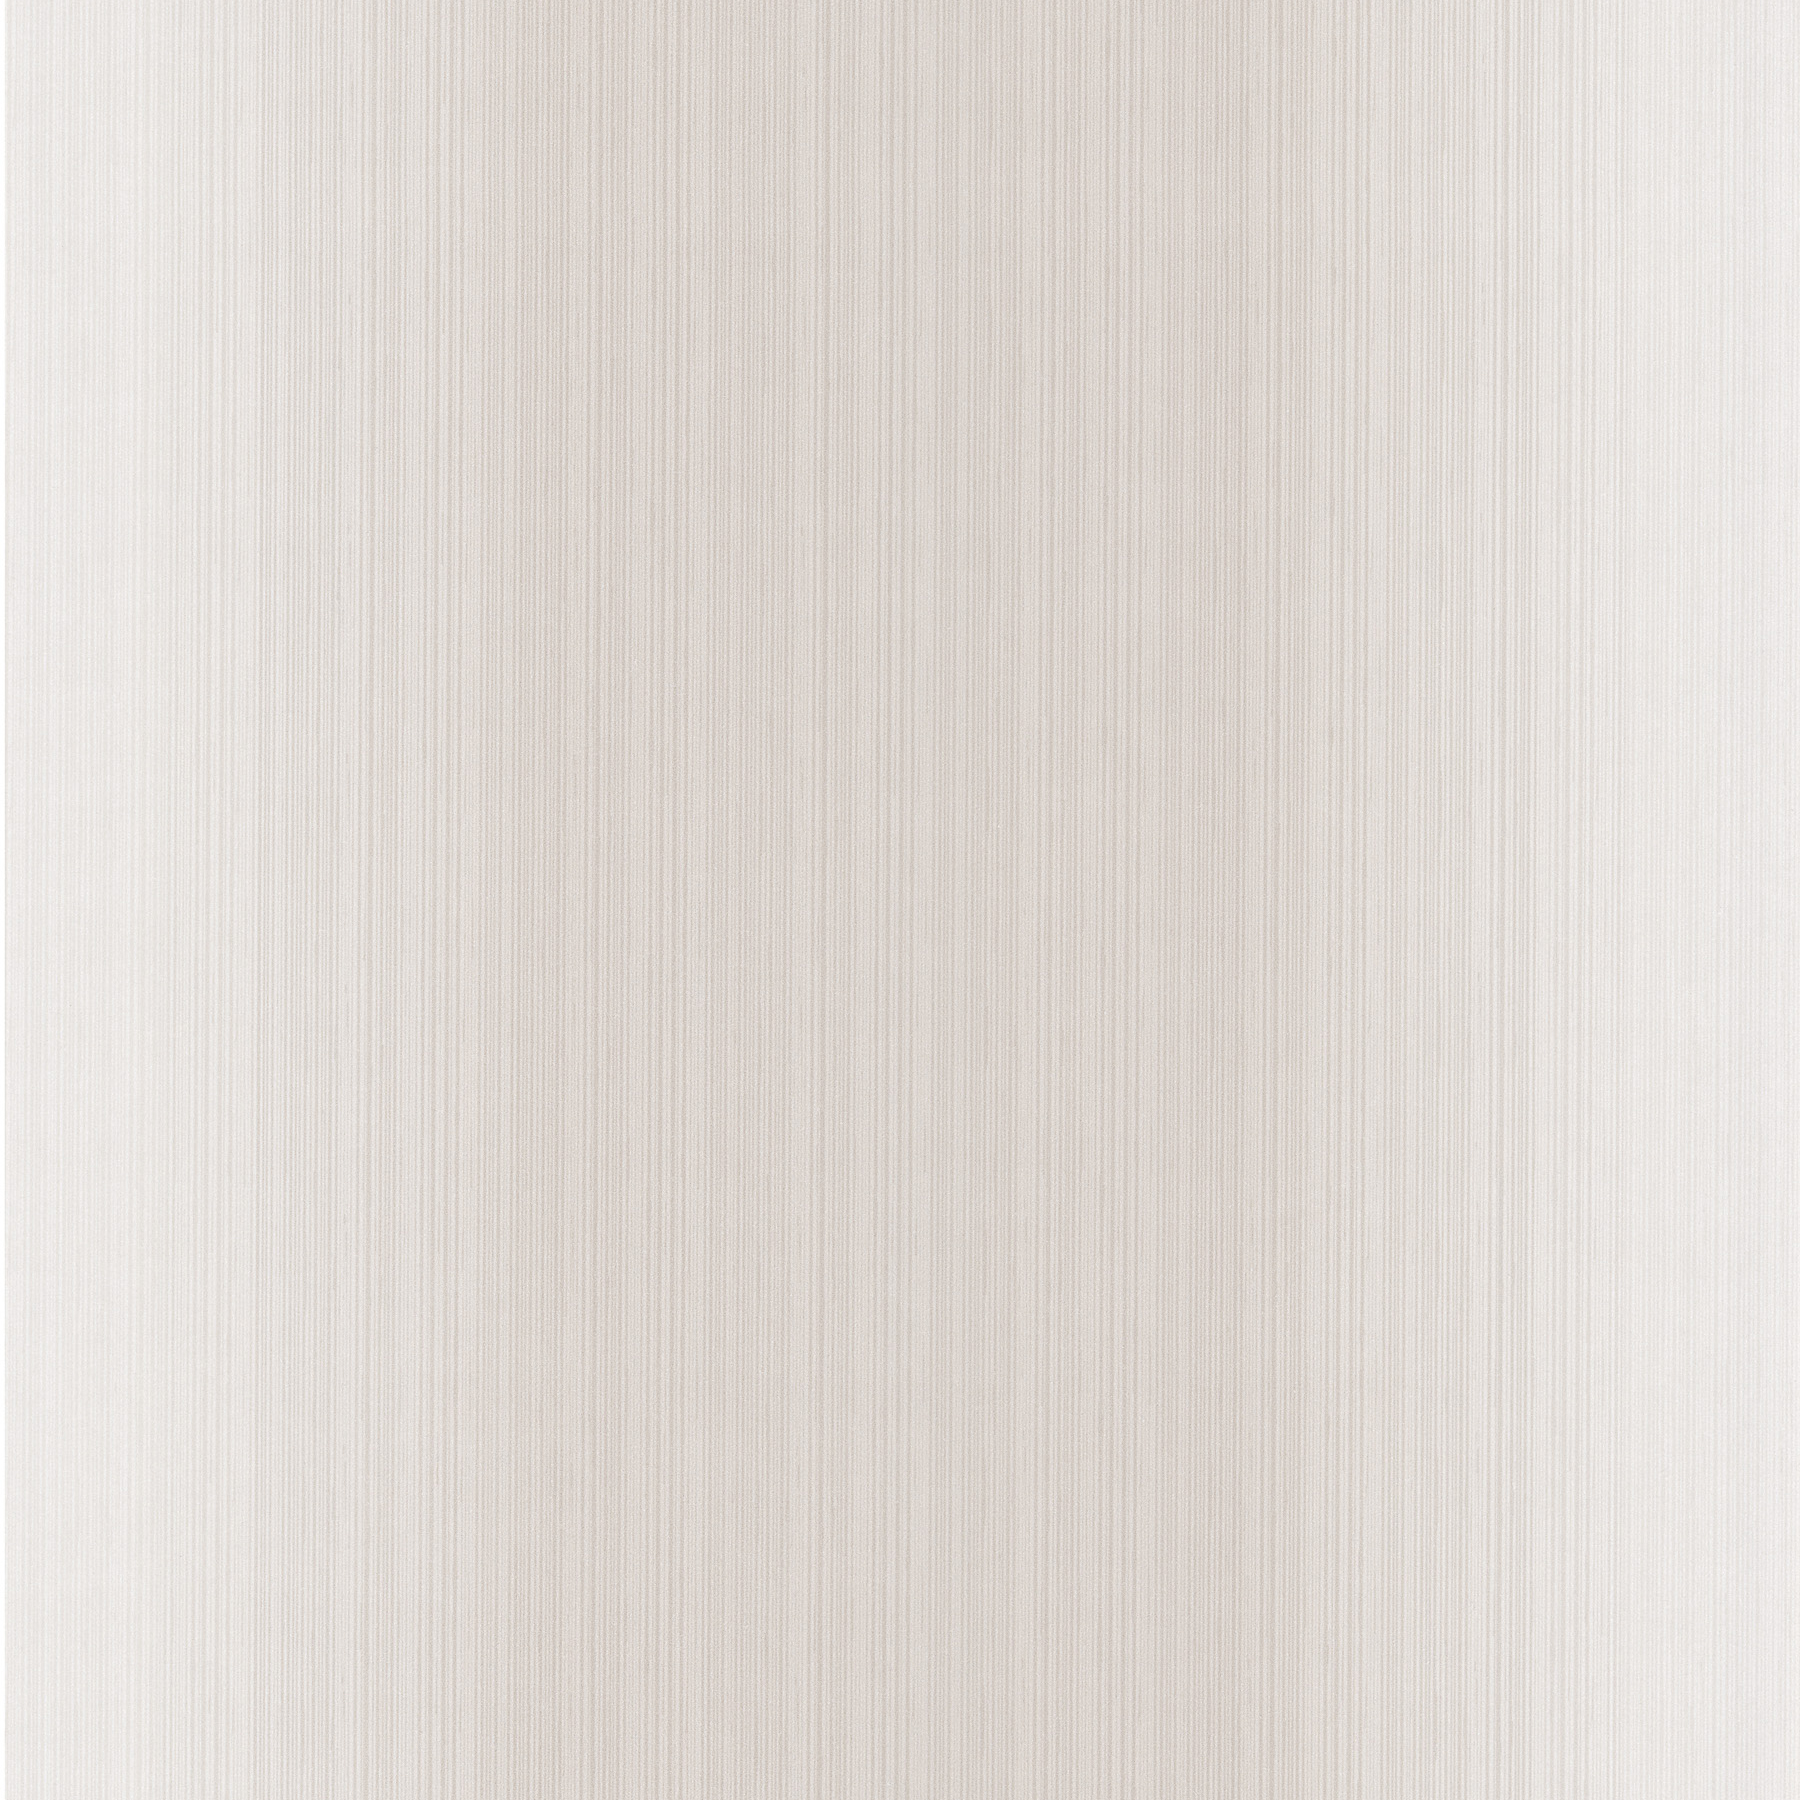 Picture of Blanch Cream Ombre Texture Wallpaper